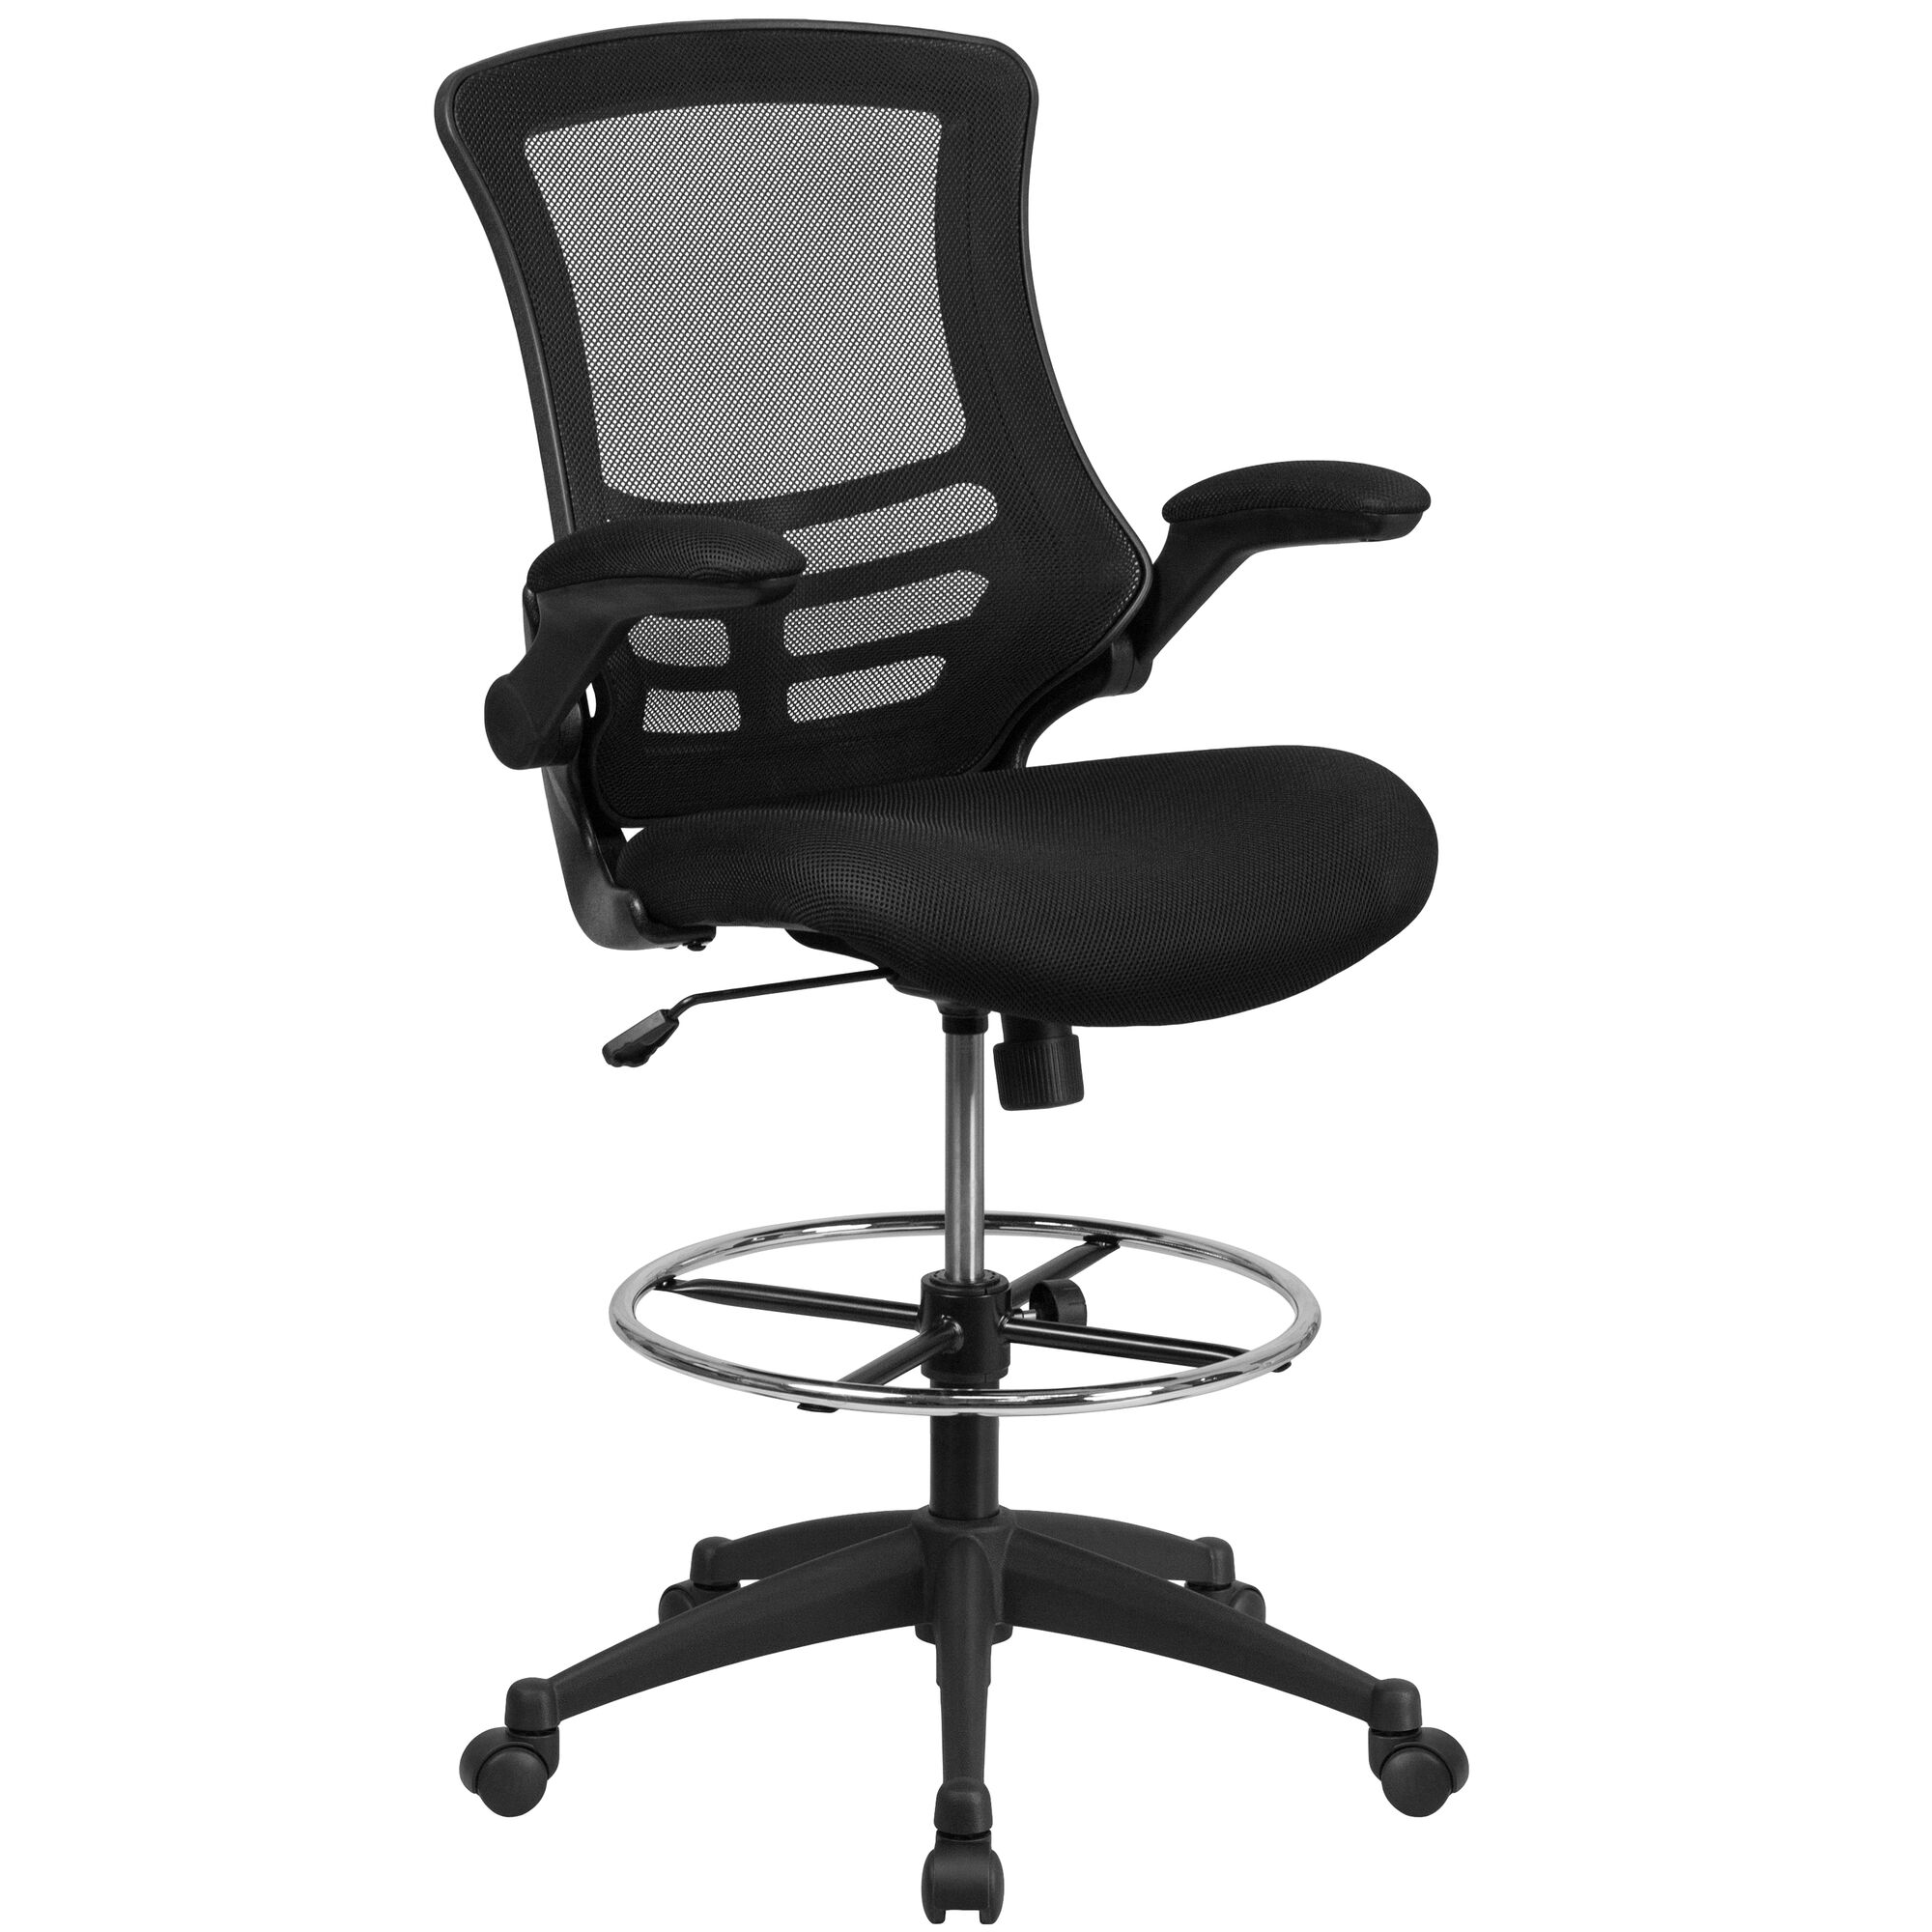 Our Mid Back Black Mesh Ergonomic Drafting Chair With